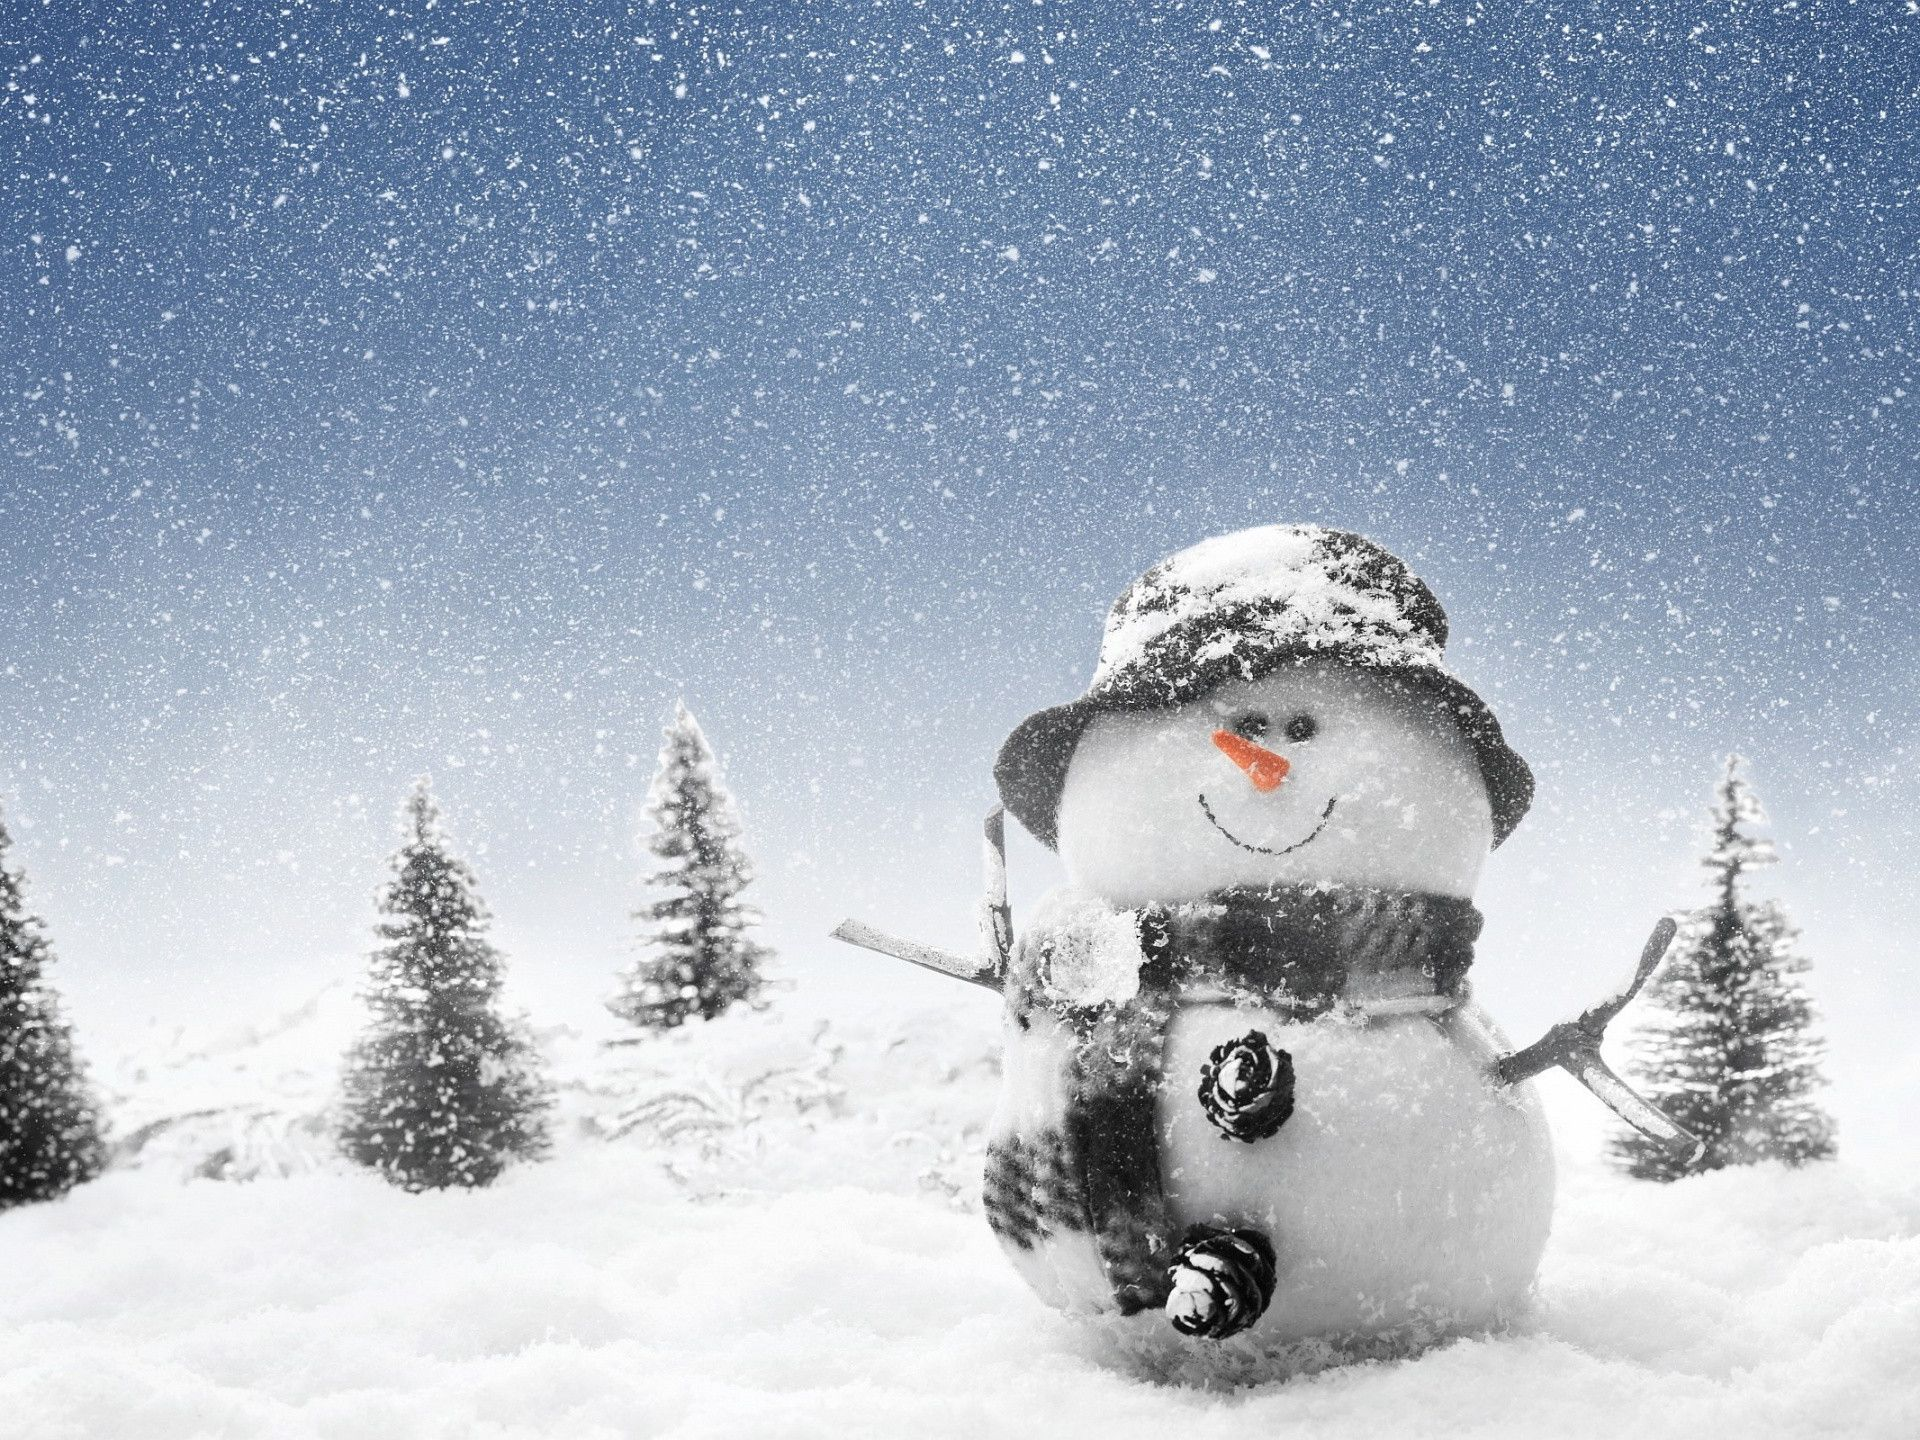 Winter Funny Wallpaper